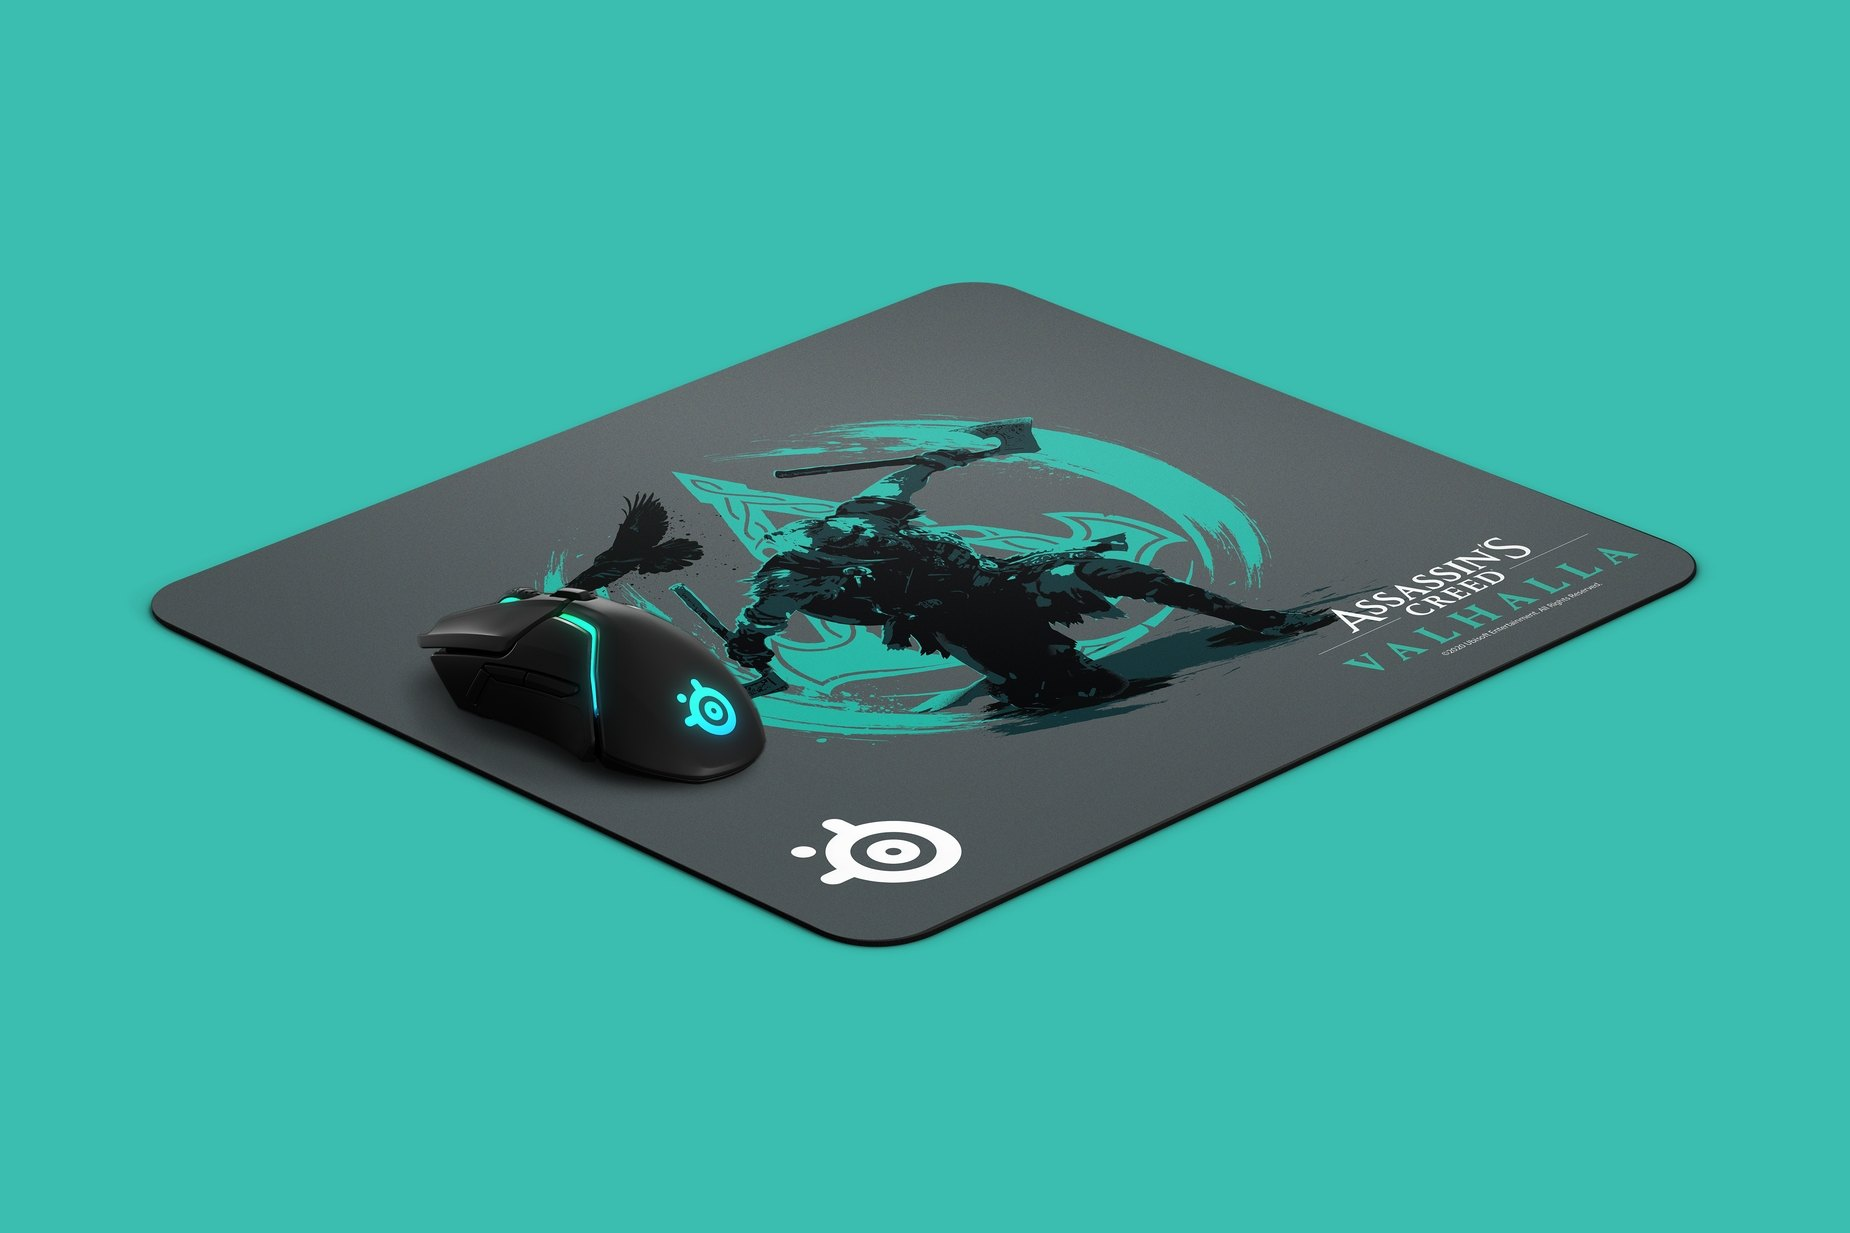 Product render of the QcK Large Assassins Creed Valhalla mousepad laying at an angle